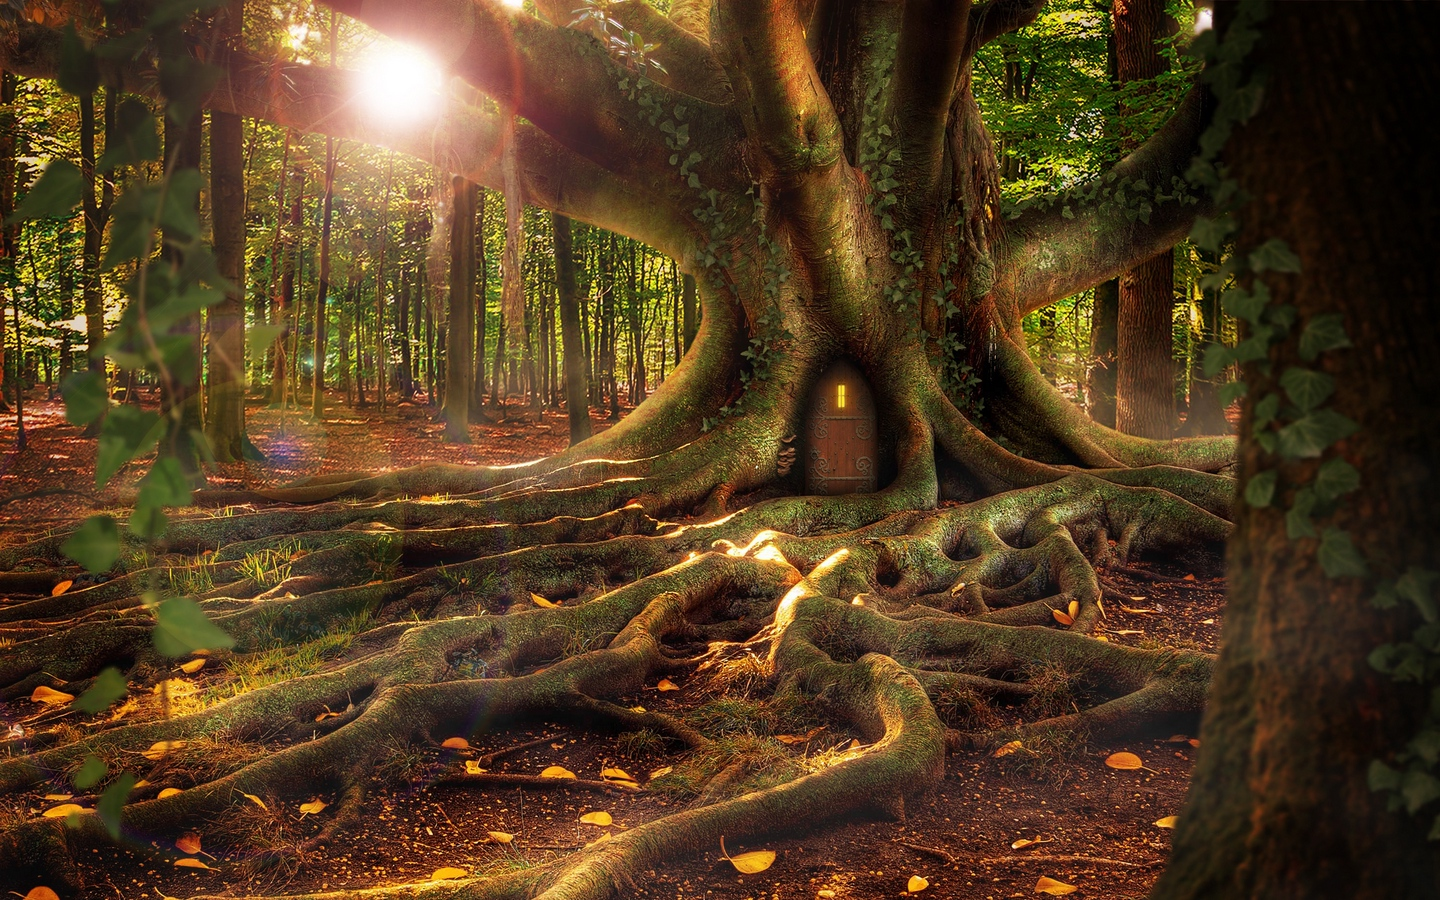 General 1440x900 nature trees branch leaves Photoshop roots fallen leaves Sun door forest treehouse moss